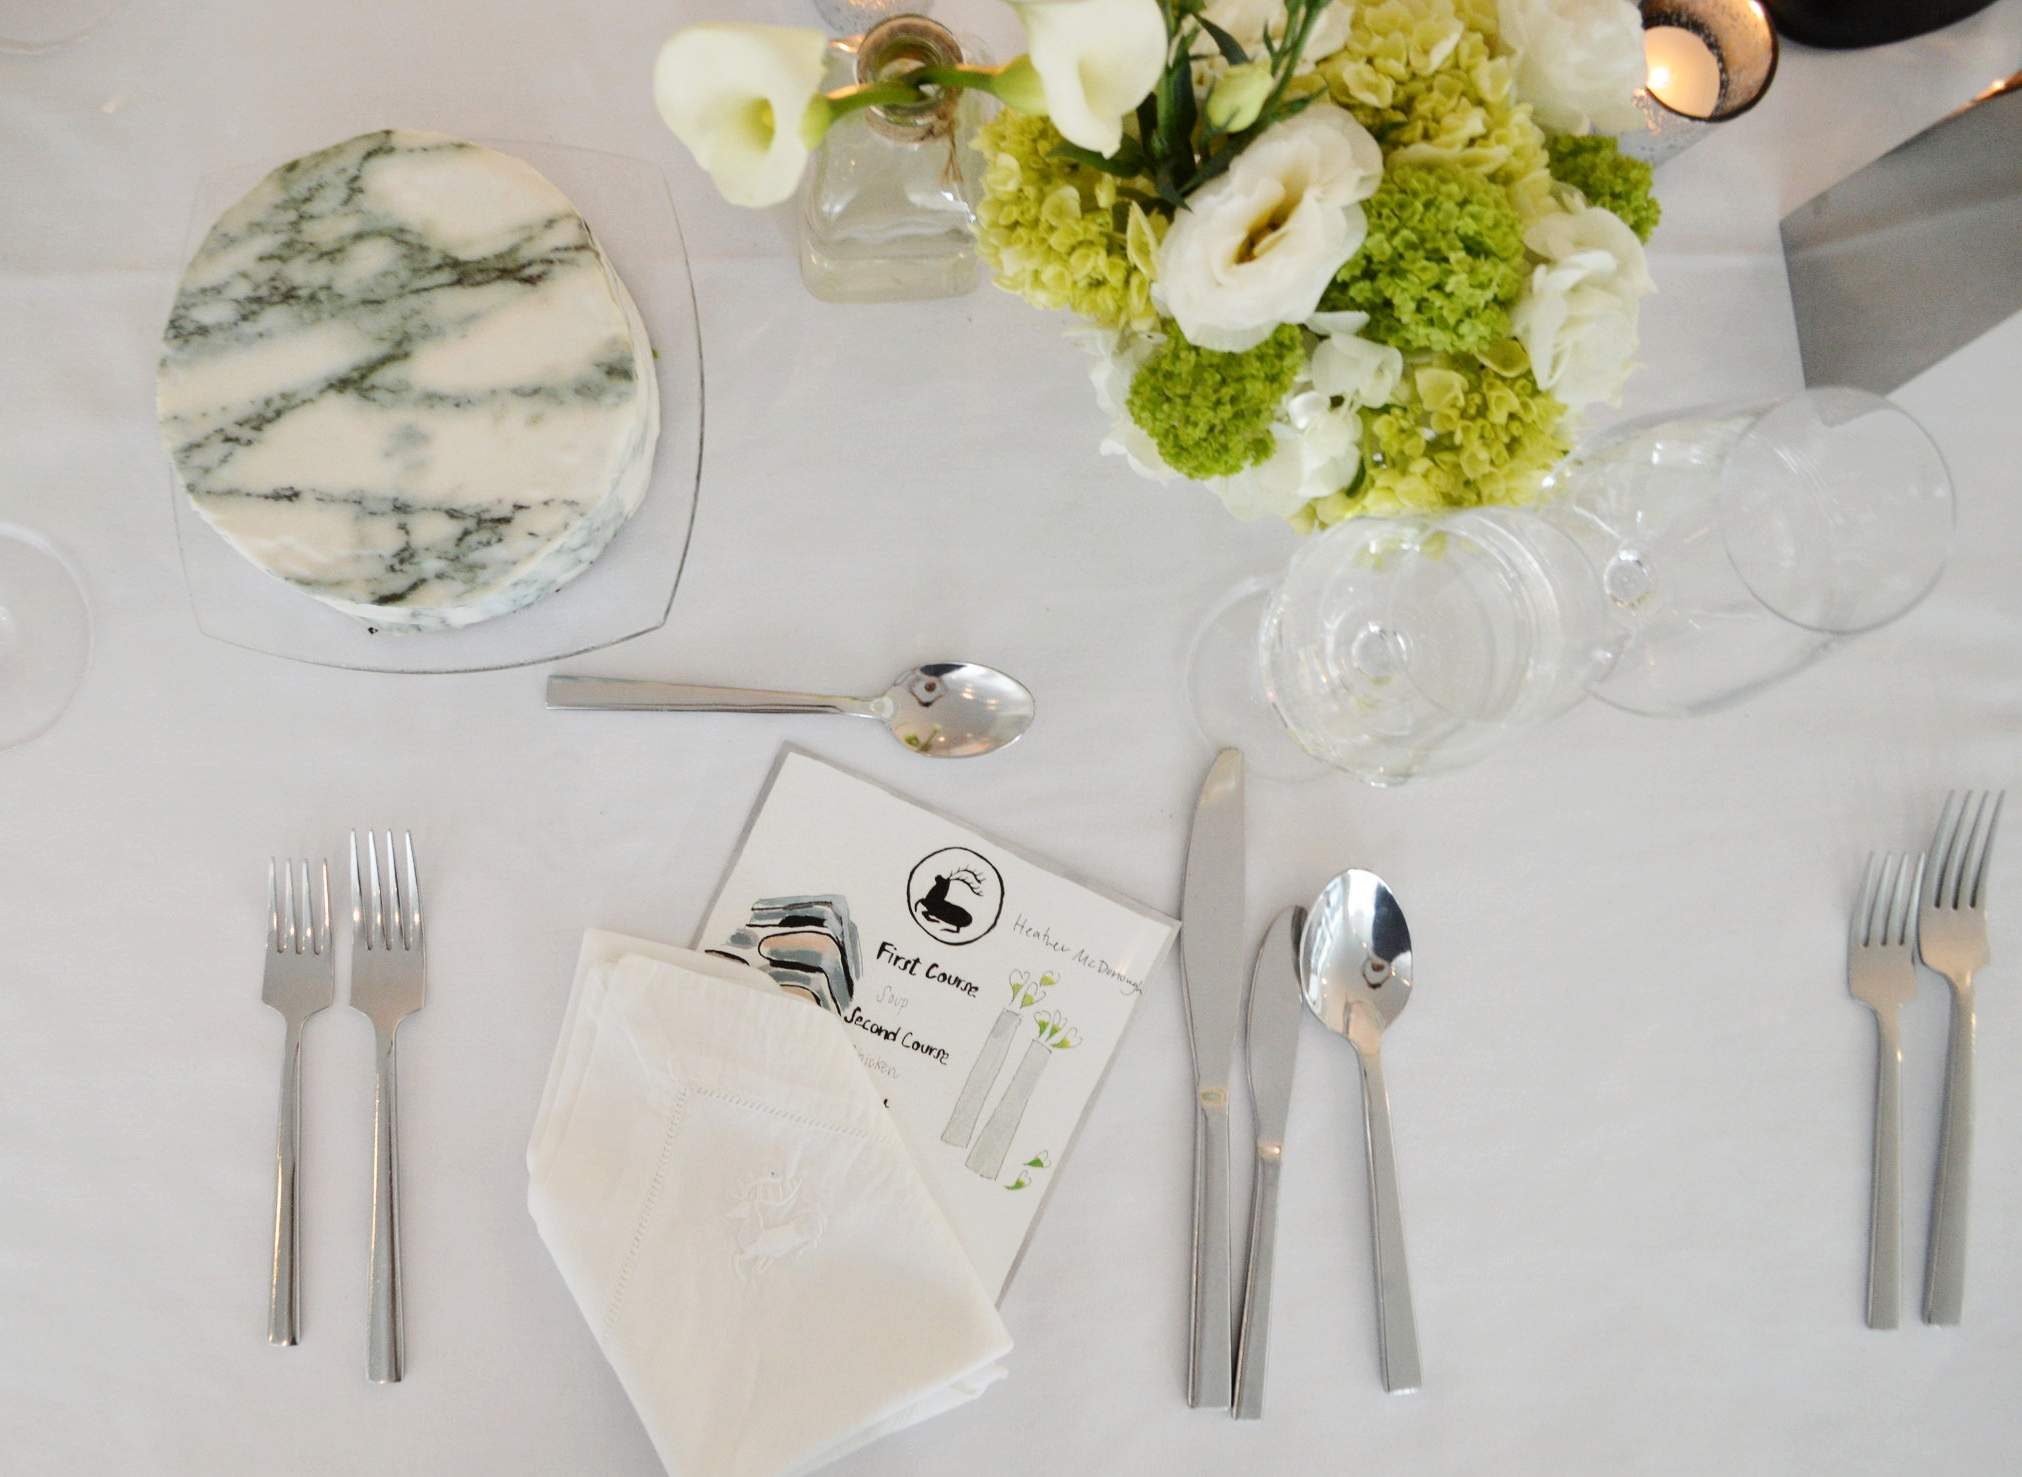 Tablescape at the Avenue Magazine dinner held at  Zaha Hadid 520 W 28th Street  including a  Chefanie Sheet  inspired by Hadid's works, a hand painted menu painted by Chefanie herself,vases designed by Zaha Hadid for Alessi, and flowers by  Mark Masone .